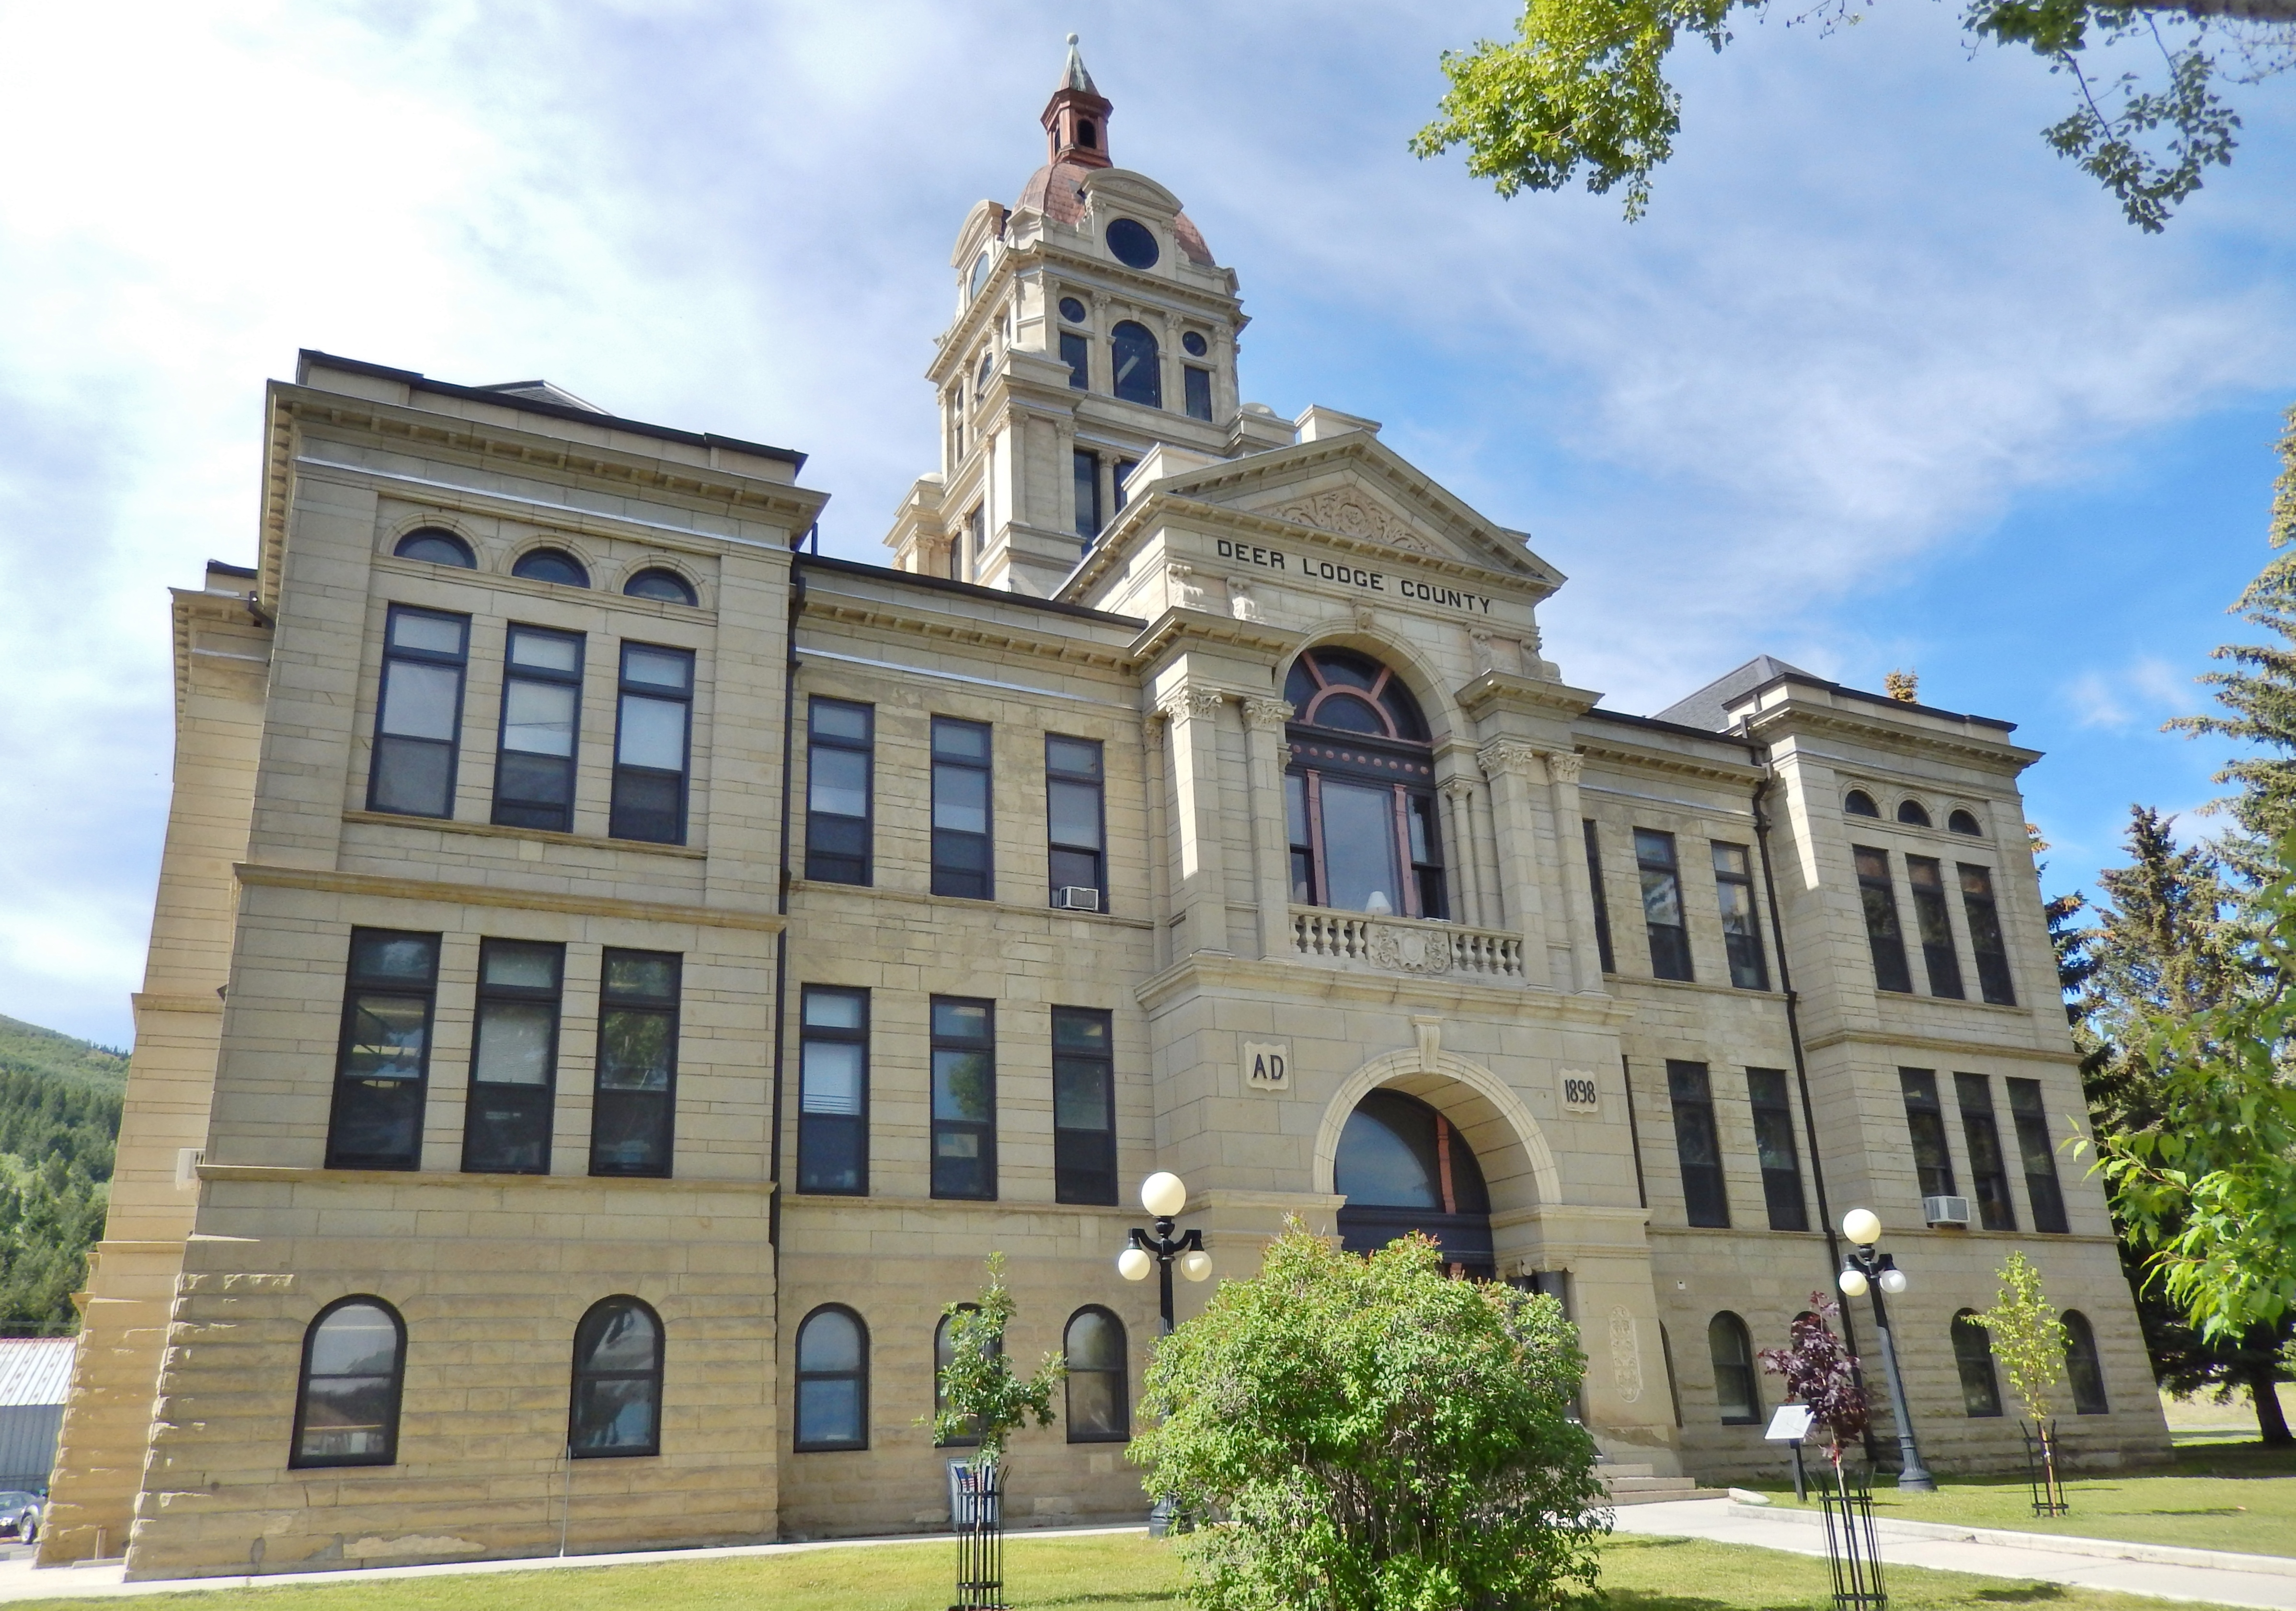 Built in 1900, the Deer Lodge County Courthouse is a fine example of Neoclassical architecture. It continues to be the seat of county government.